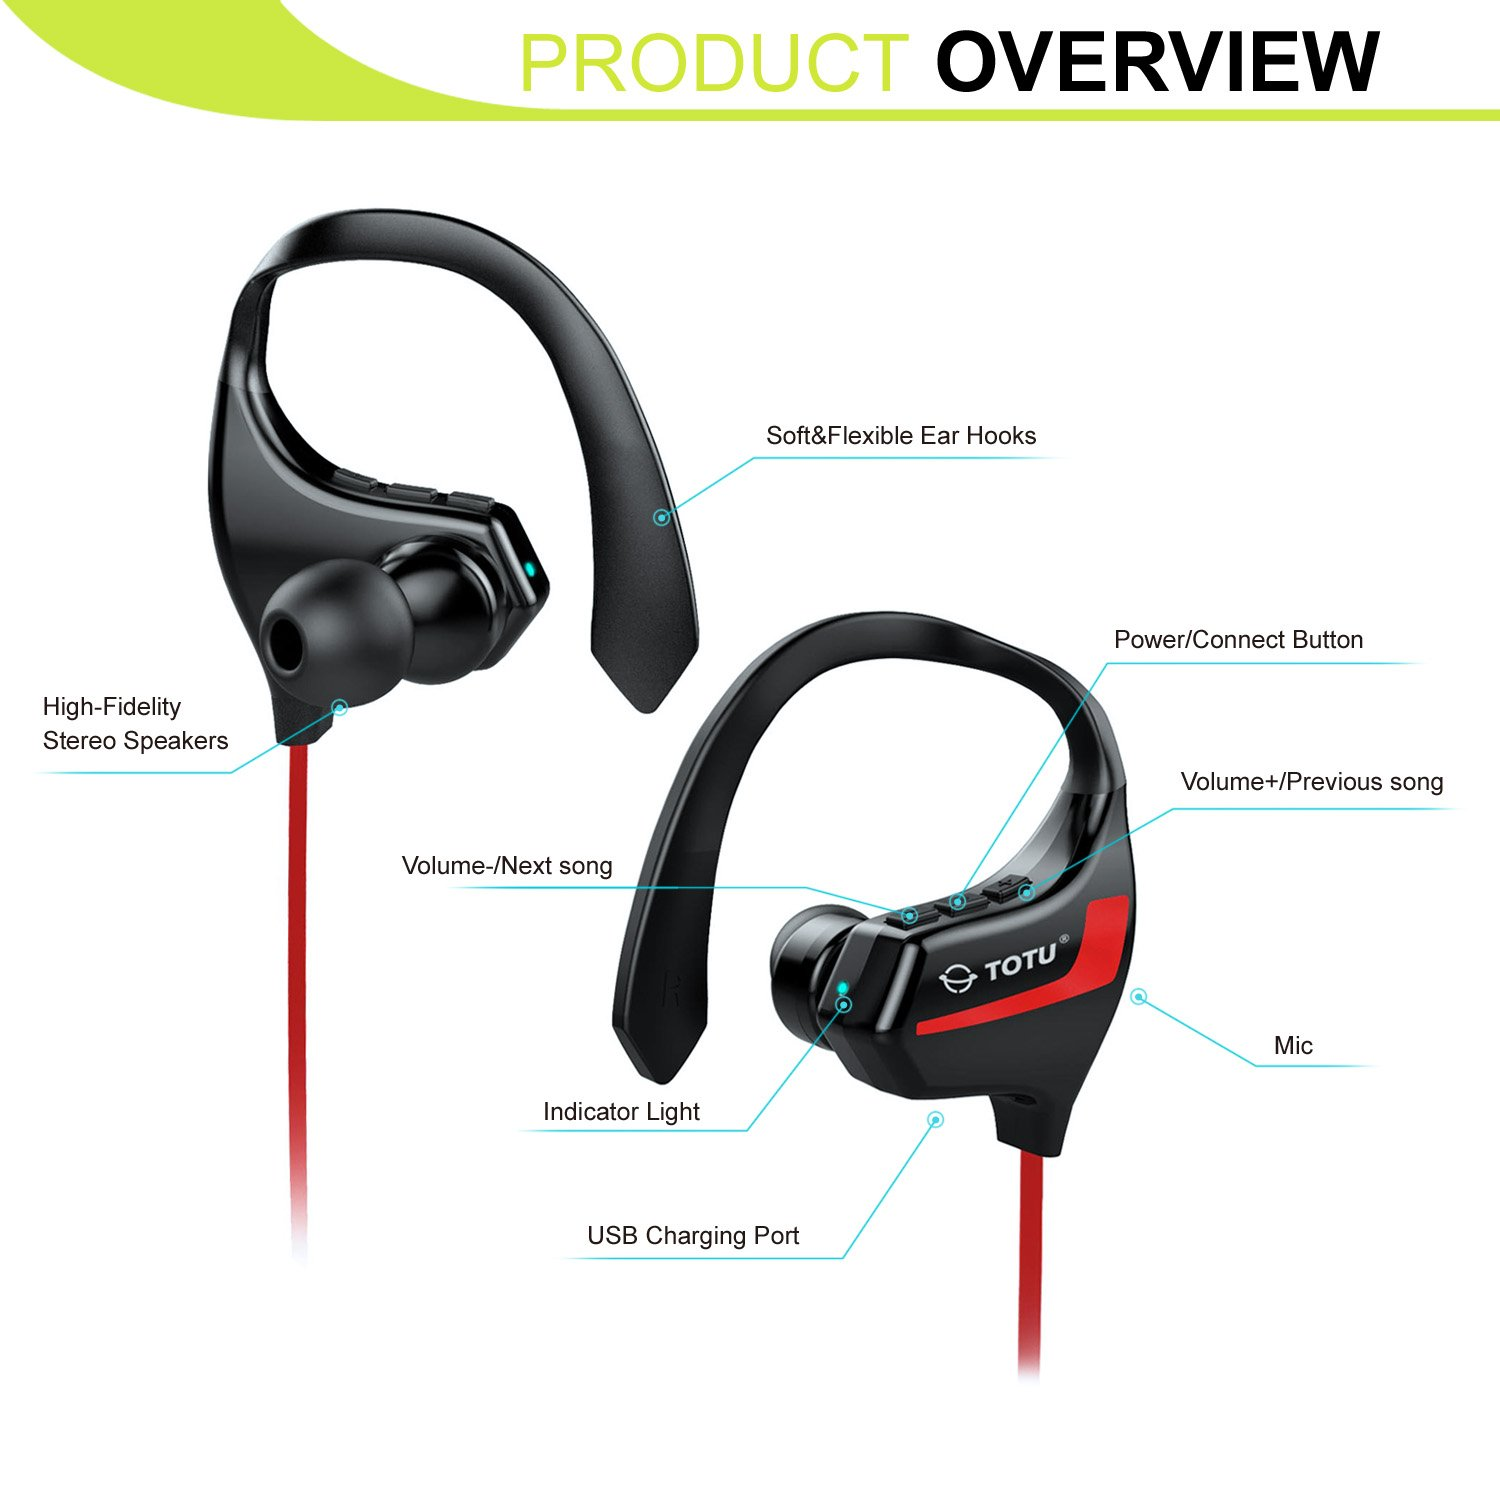 Totu Bt 2 V41 Bluetooth Headphones Wireless Music Stereo Sports Headset Red Headphone Jack Wiring That Home Audio Theater